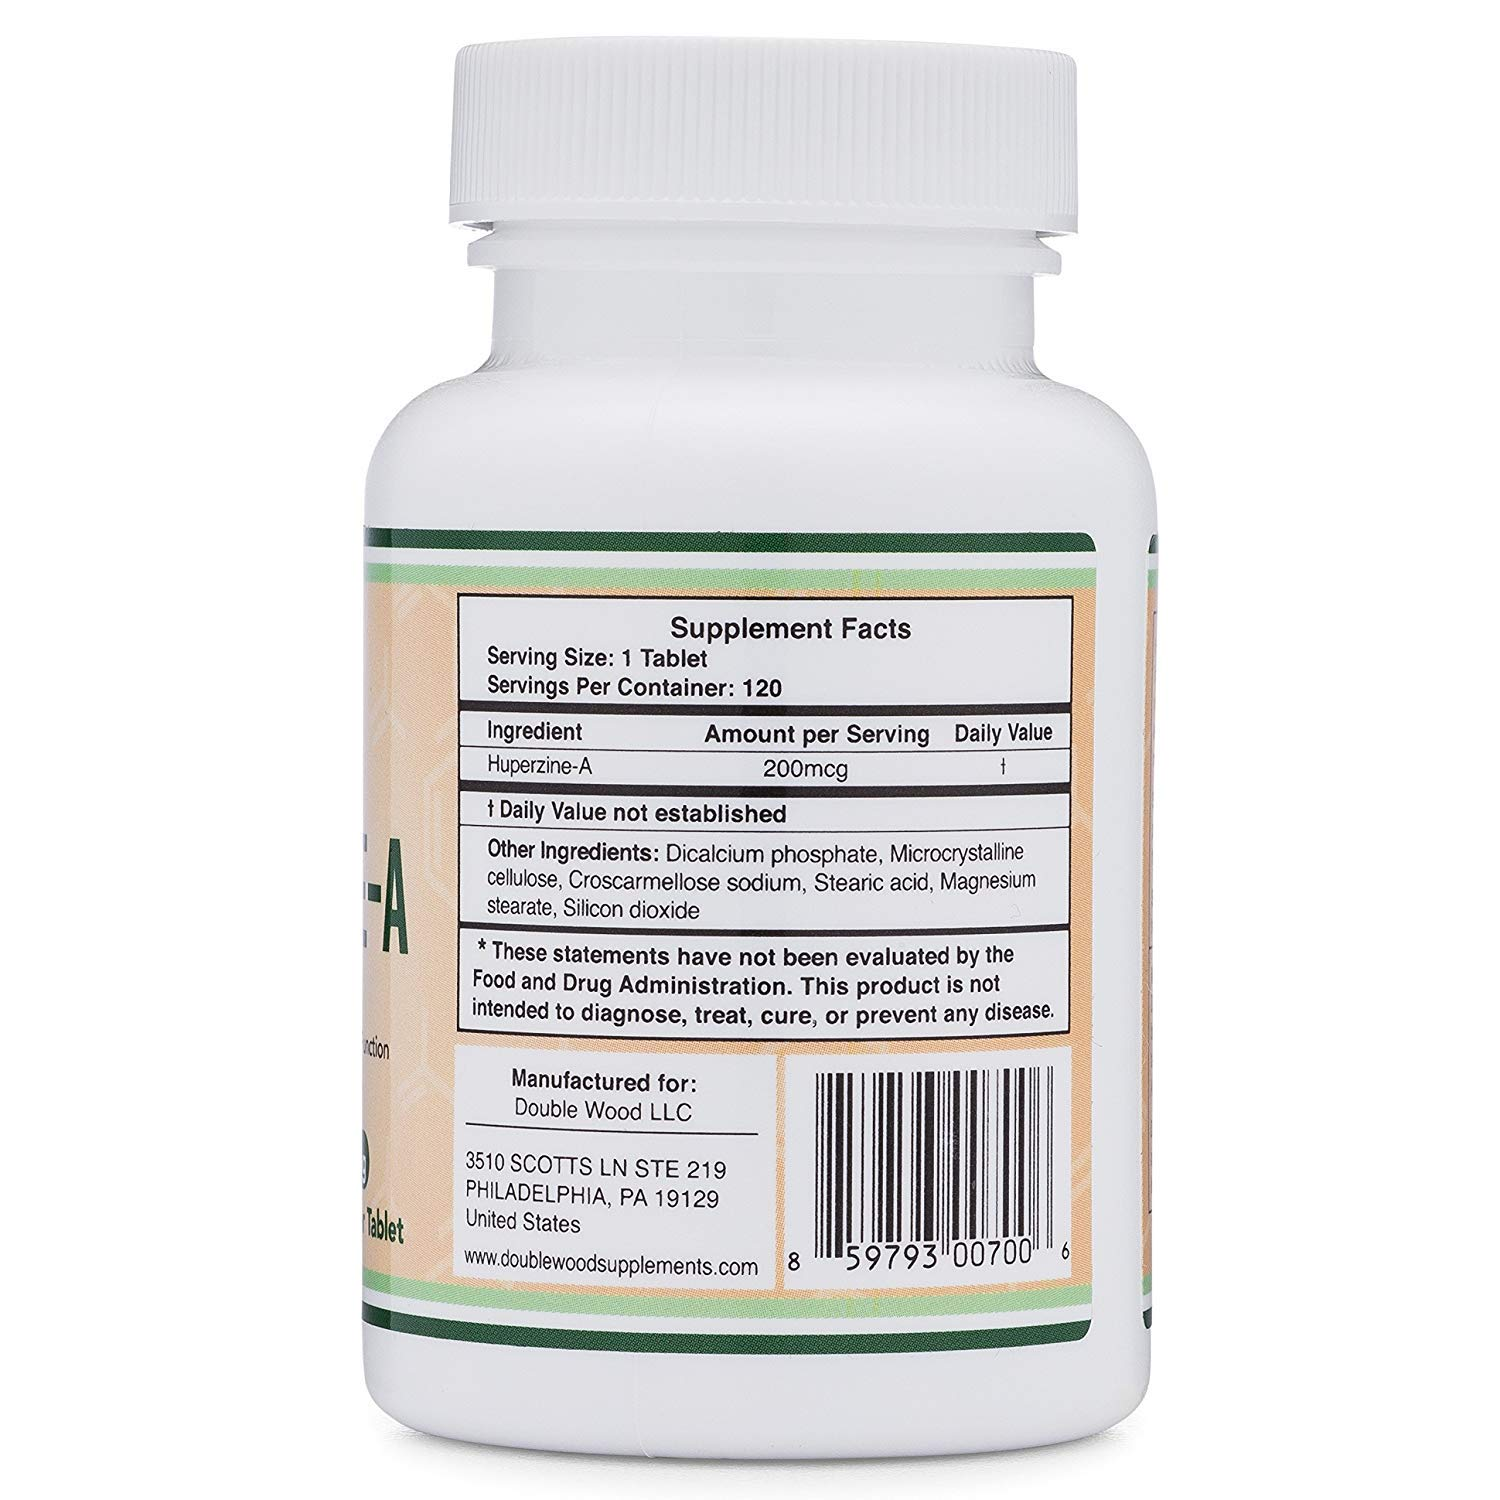 Huperzine A 200mcg (Third Party Tested) Made in The USA, 120 Tablets, Nootropics Brain Supplement to Boost Acetylcholine, Improve Memory and Focus by Double Wood Supplements by Double Wood Supplements (Image #2)